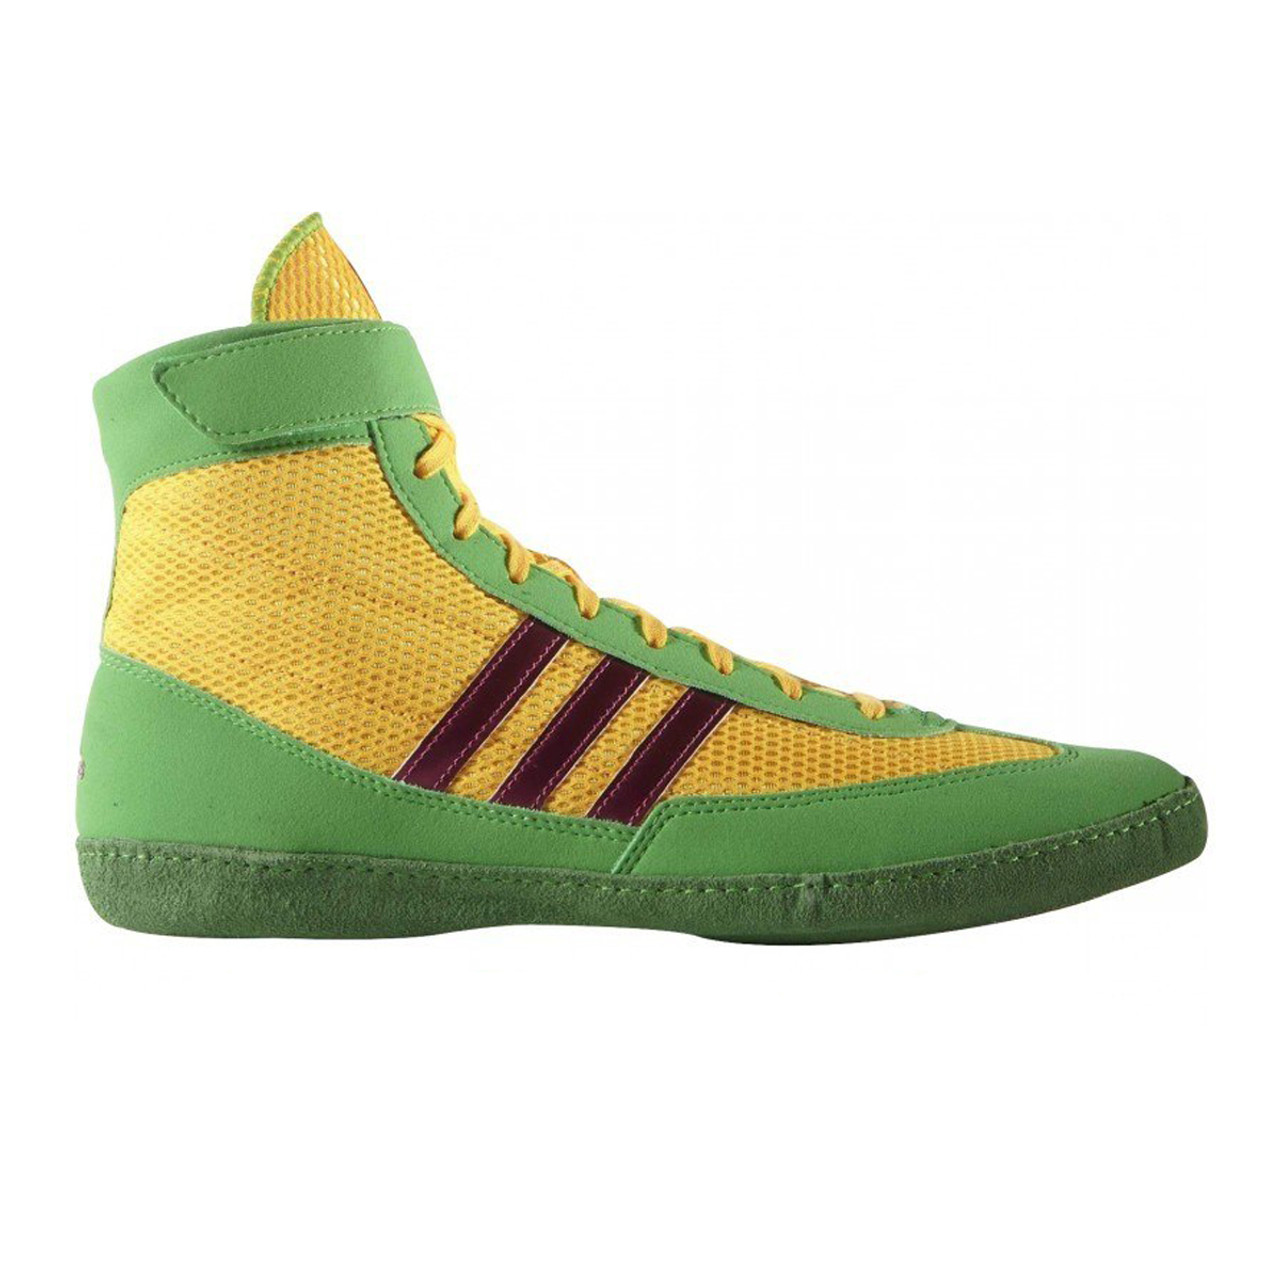 ... coupon for adidas combat speed 4 senior wrestling shoes aq3059 gold pink  lime 0f2bb 6fec0 9a3a77447